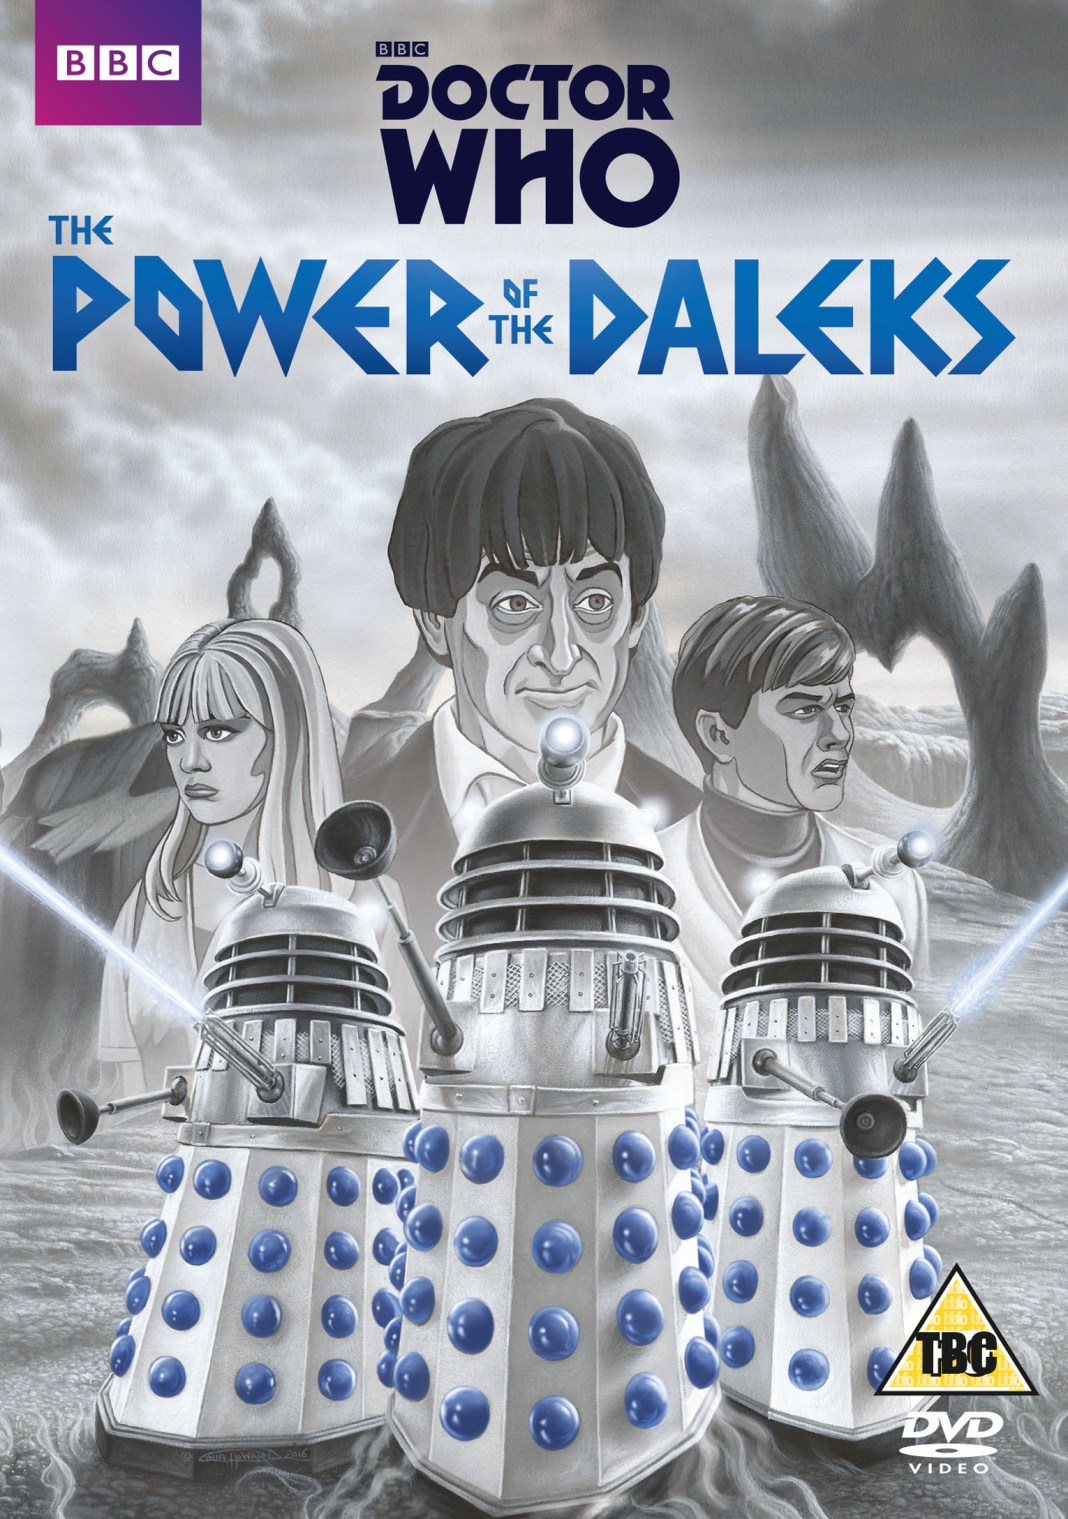 The Power of the Daleks Official Artwork (c) BBC